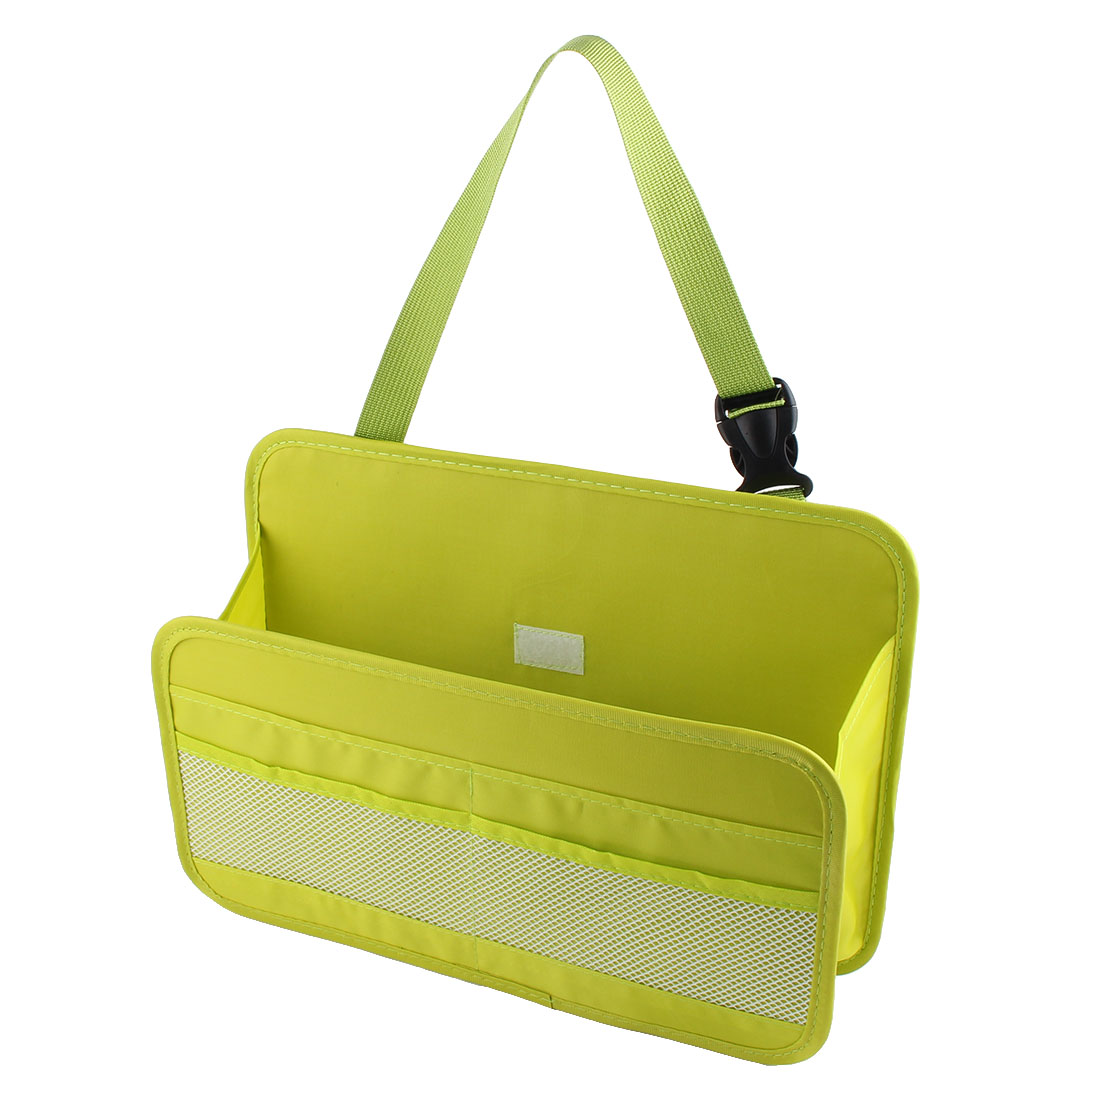 Car Automobile Multi Function Buckle Strap Phone Book Tissue Organizer Storage Box Container Lime Green